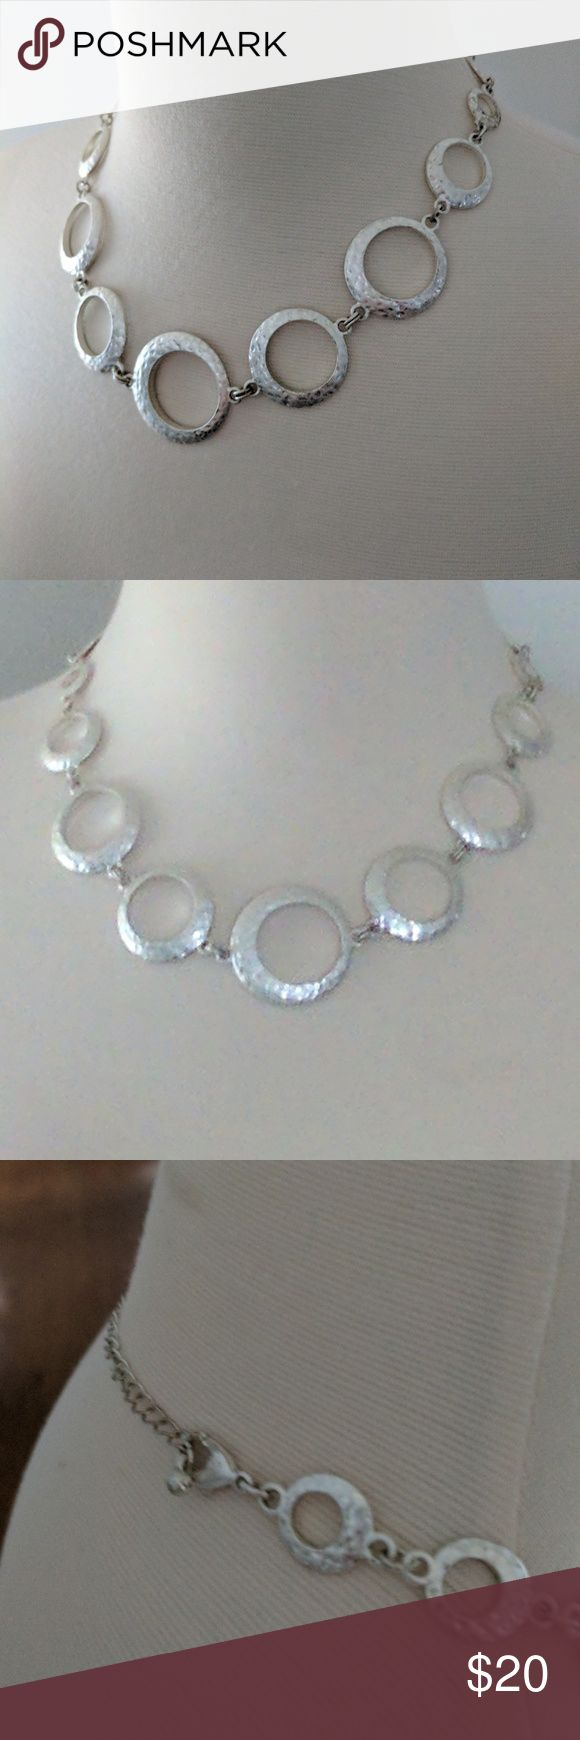 Park Lane Circle Hammered Silver Necklace Park lane hammered silver necklace Park Lane Jewelry Necklaces